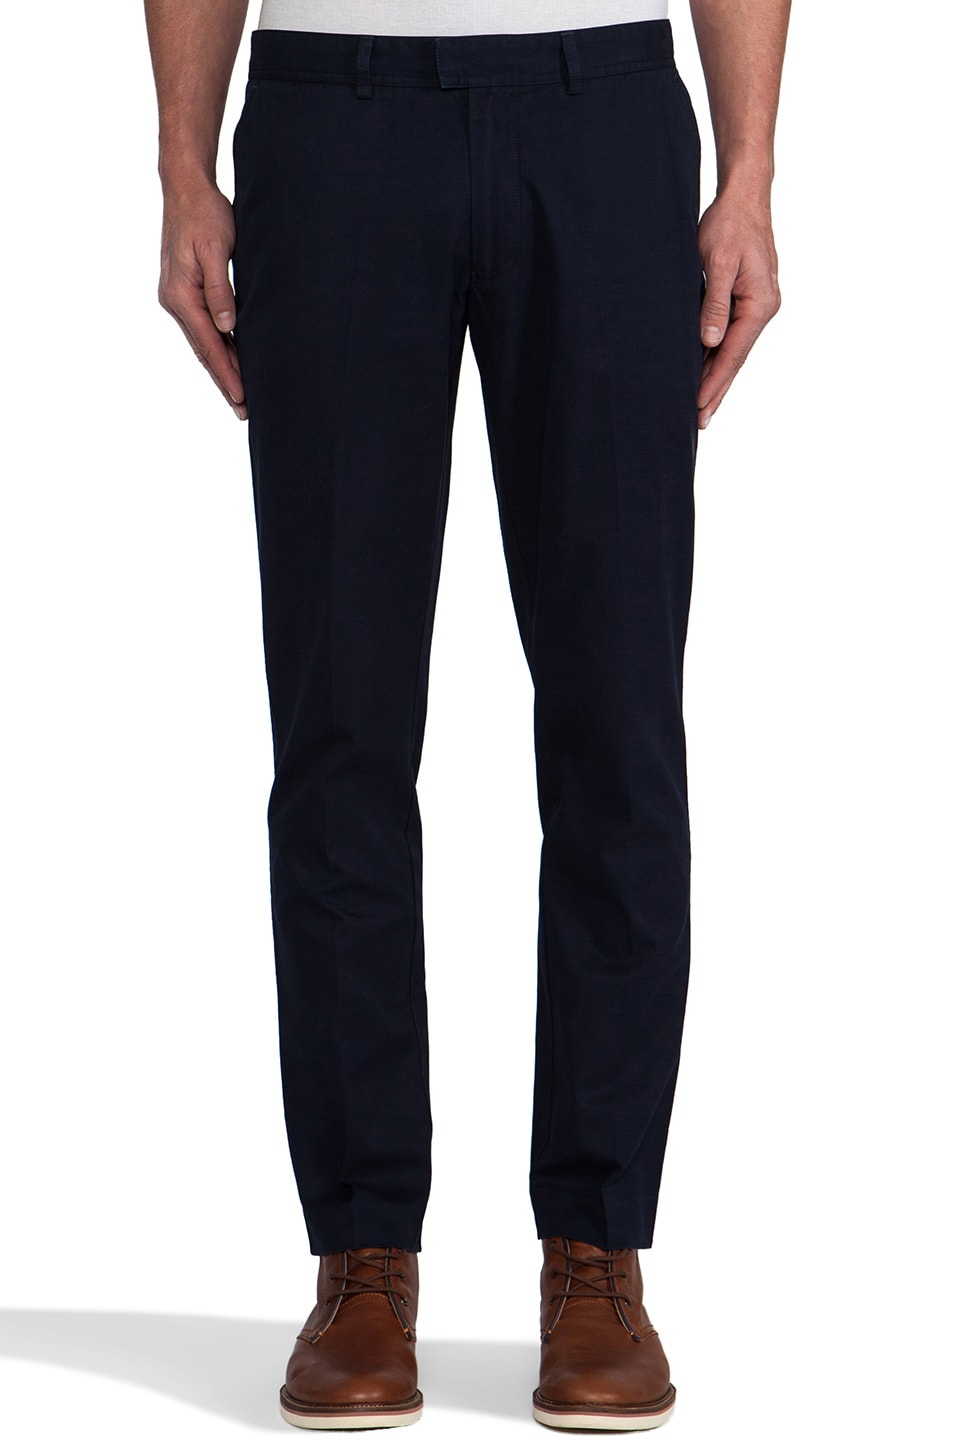 FARAH VINTAGE The Terence Twill Chino in Navy